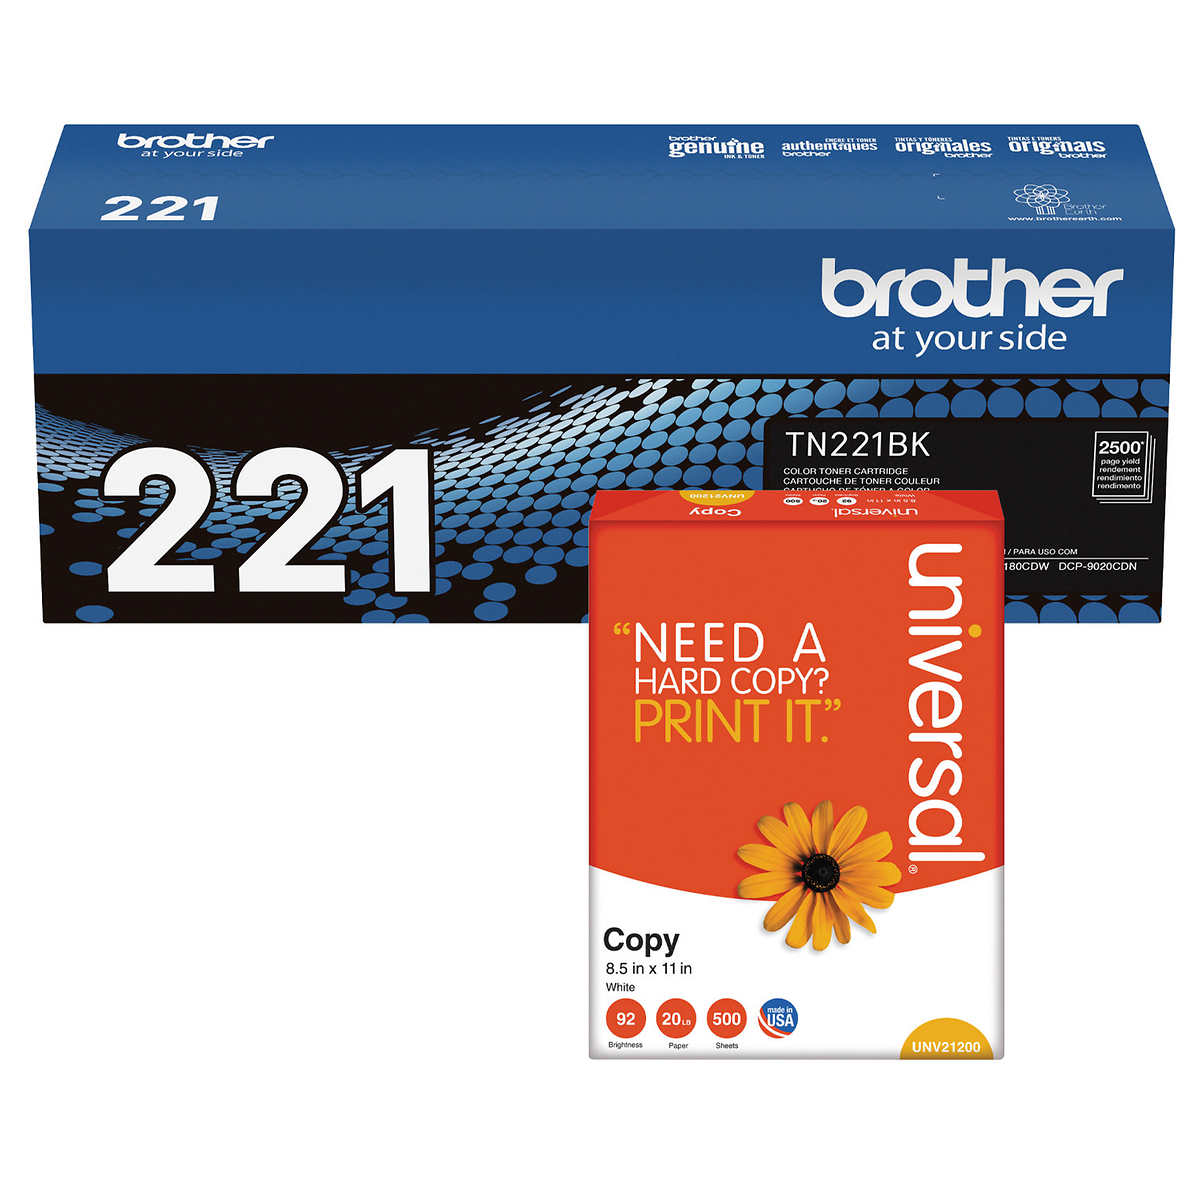 Works with: HL 3140CW On-Site Laser Compatible Toner Replacement for Brother TN221BK 9340CDW 9330CDW Black 3170CDW; MFC 9130CW